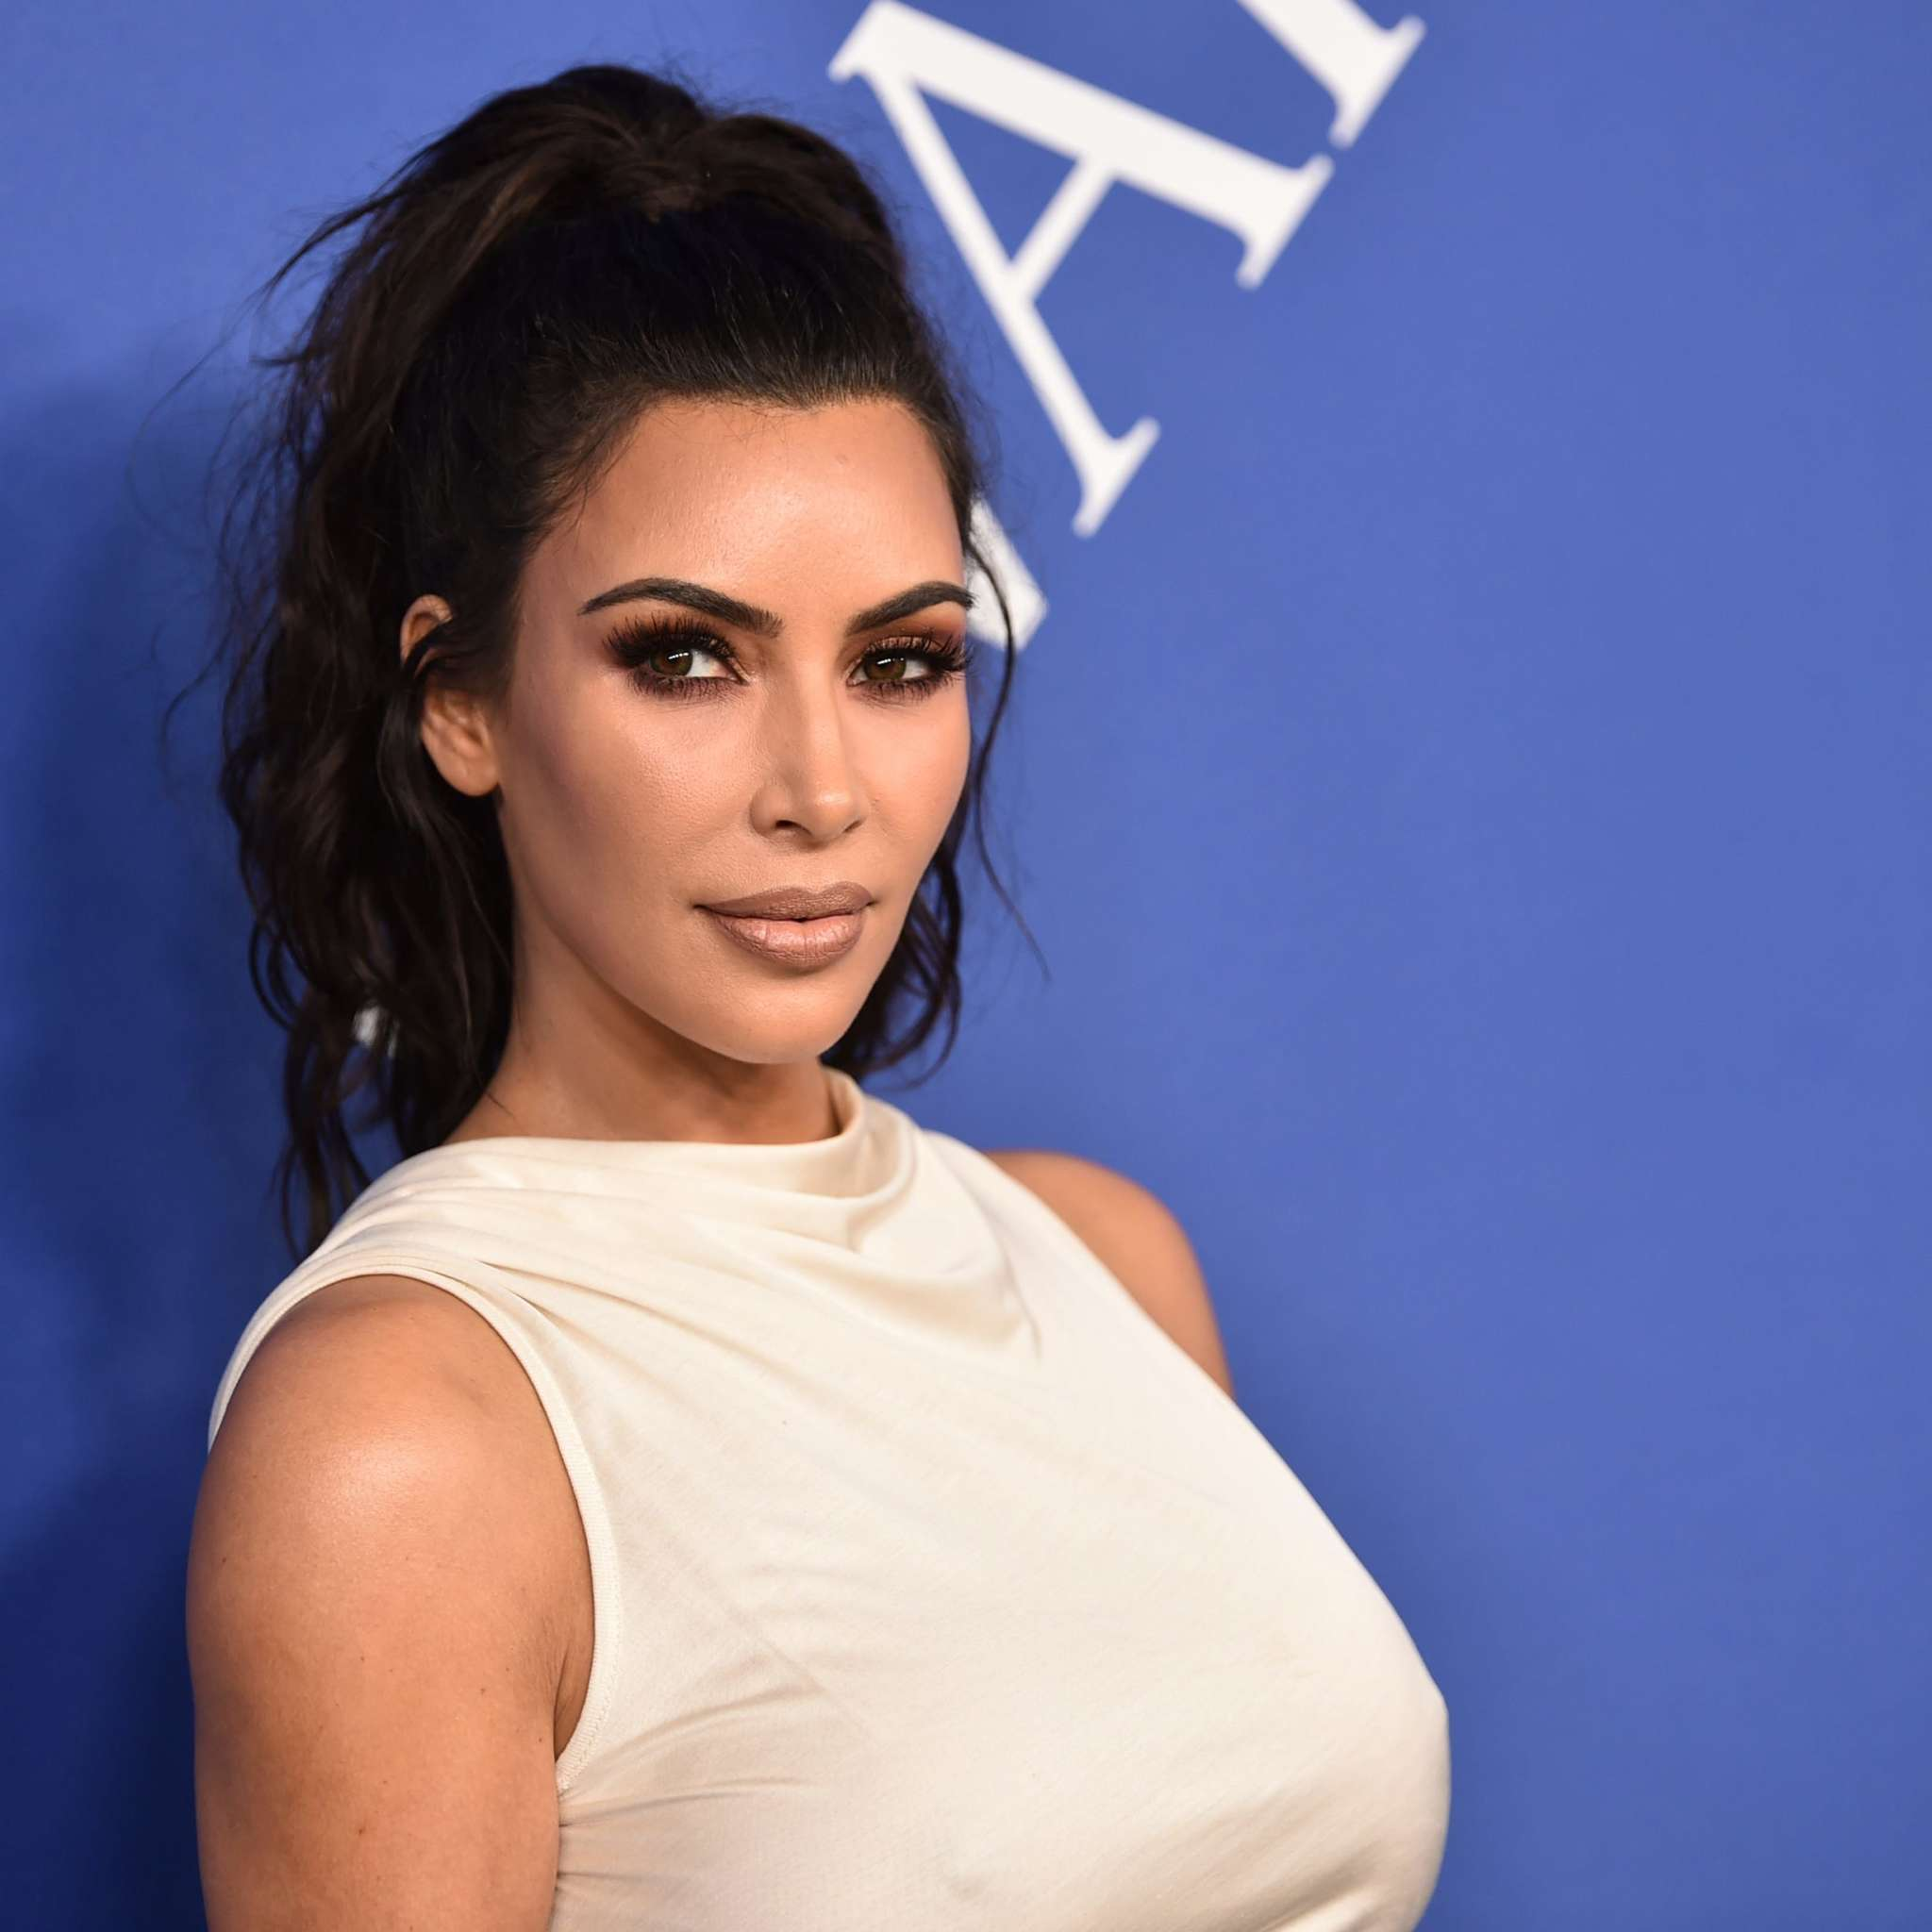 """""""kim-kardashian-turns-her-house-into-a-spider-web-for-halloween-see-the-clips-that-triggered-massive-backlash"""""""